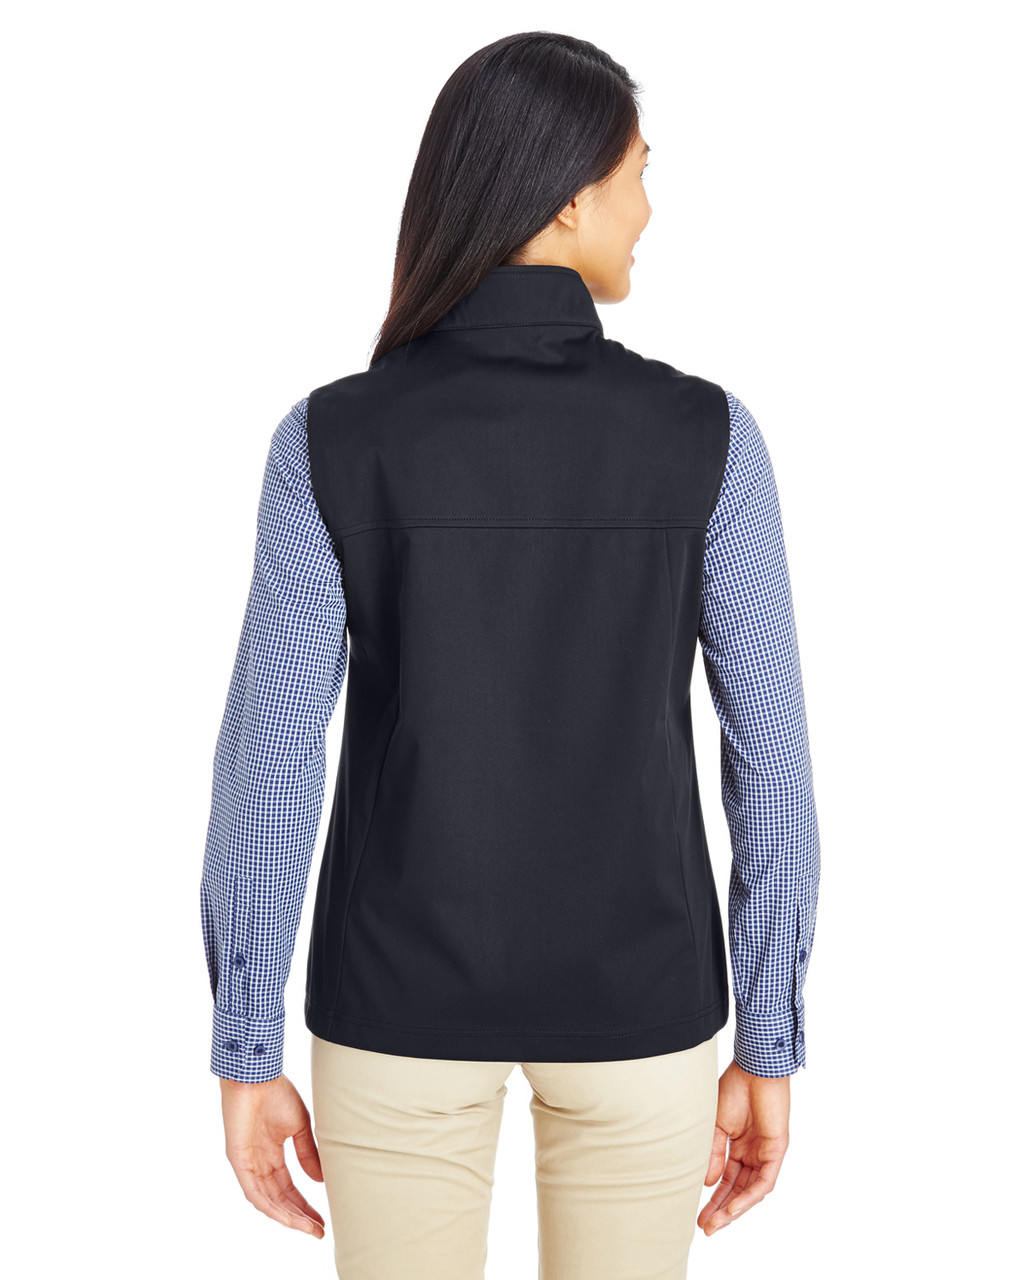 Black - Back CE709W Ash City - Core 365 Ladies' Techno Lite Three-Layer Knit Tech-Shell Quarter-Zip Vest | Blankclothing.ca